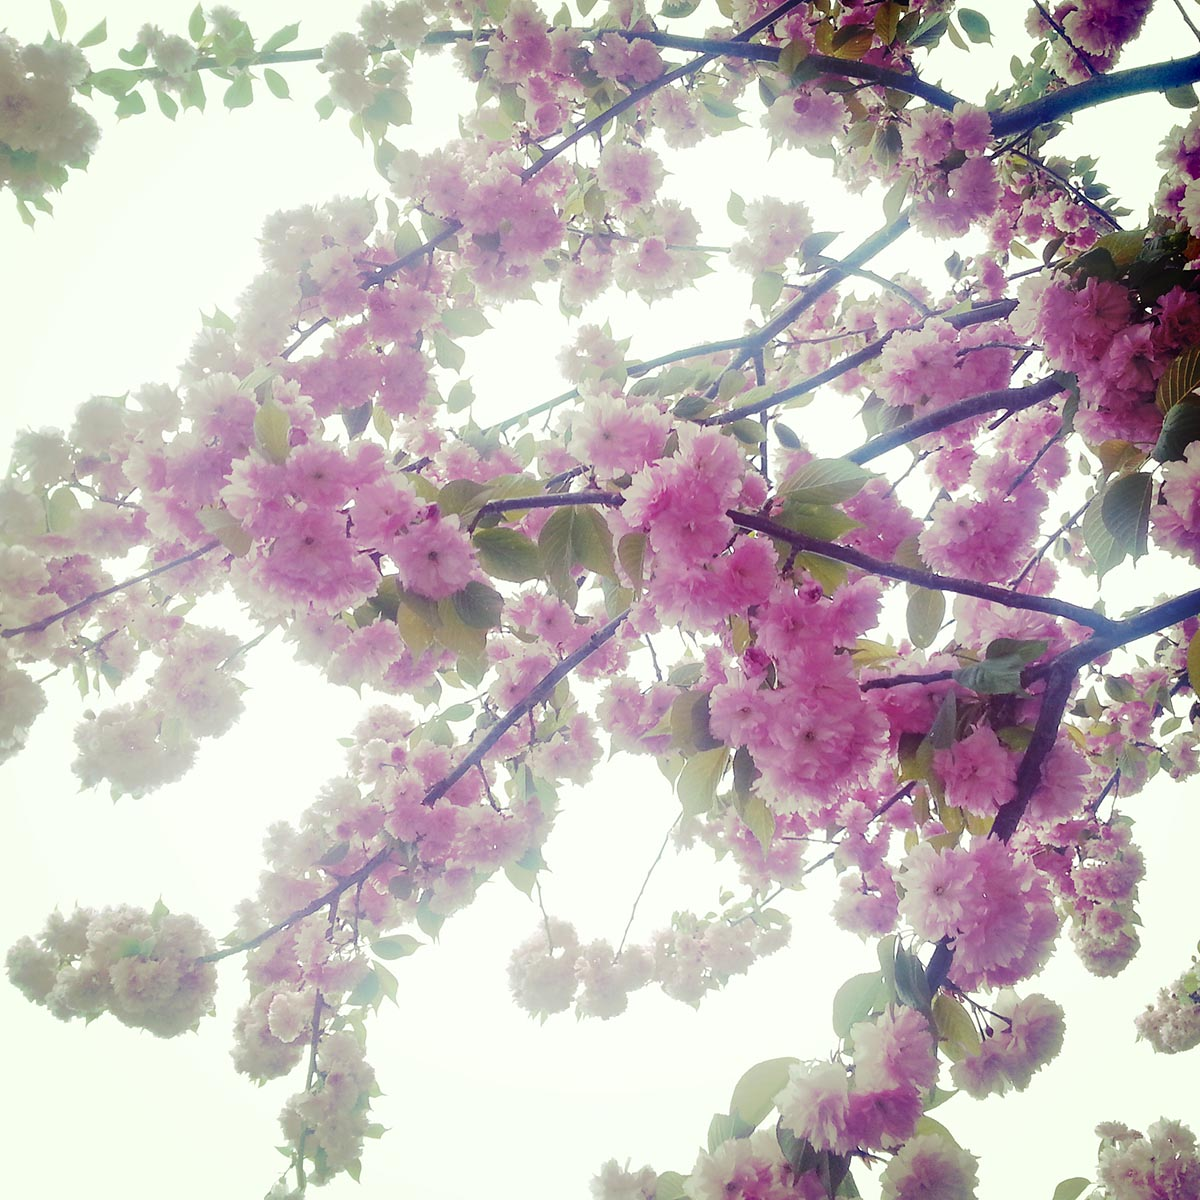 Free stock photo Pink blossoms on tree branches against a white sky